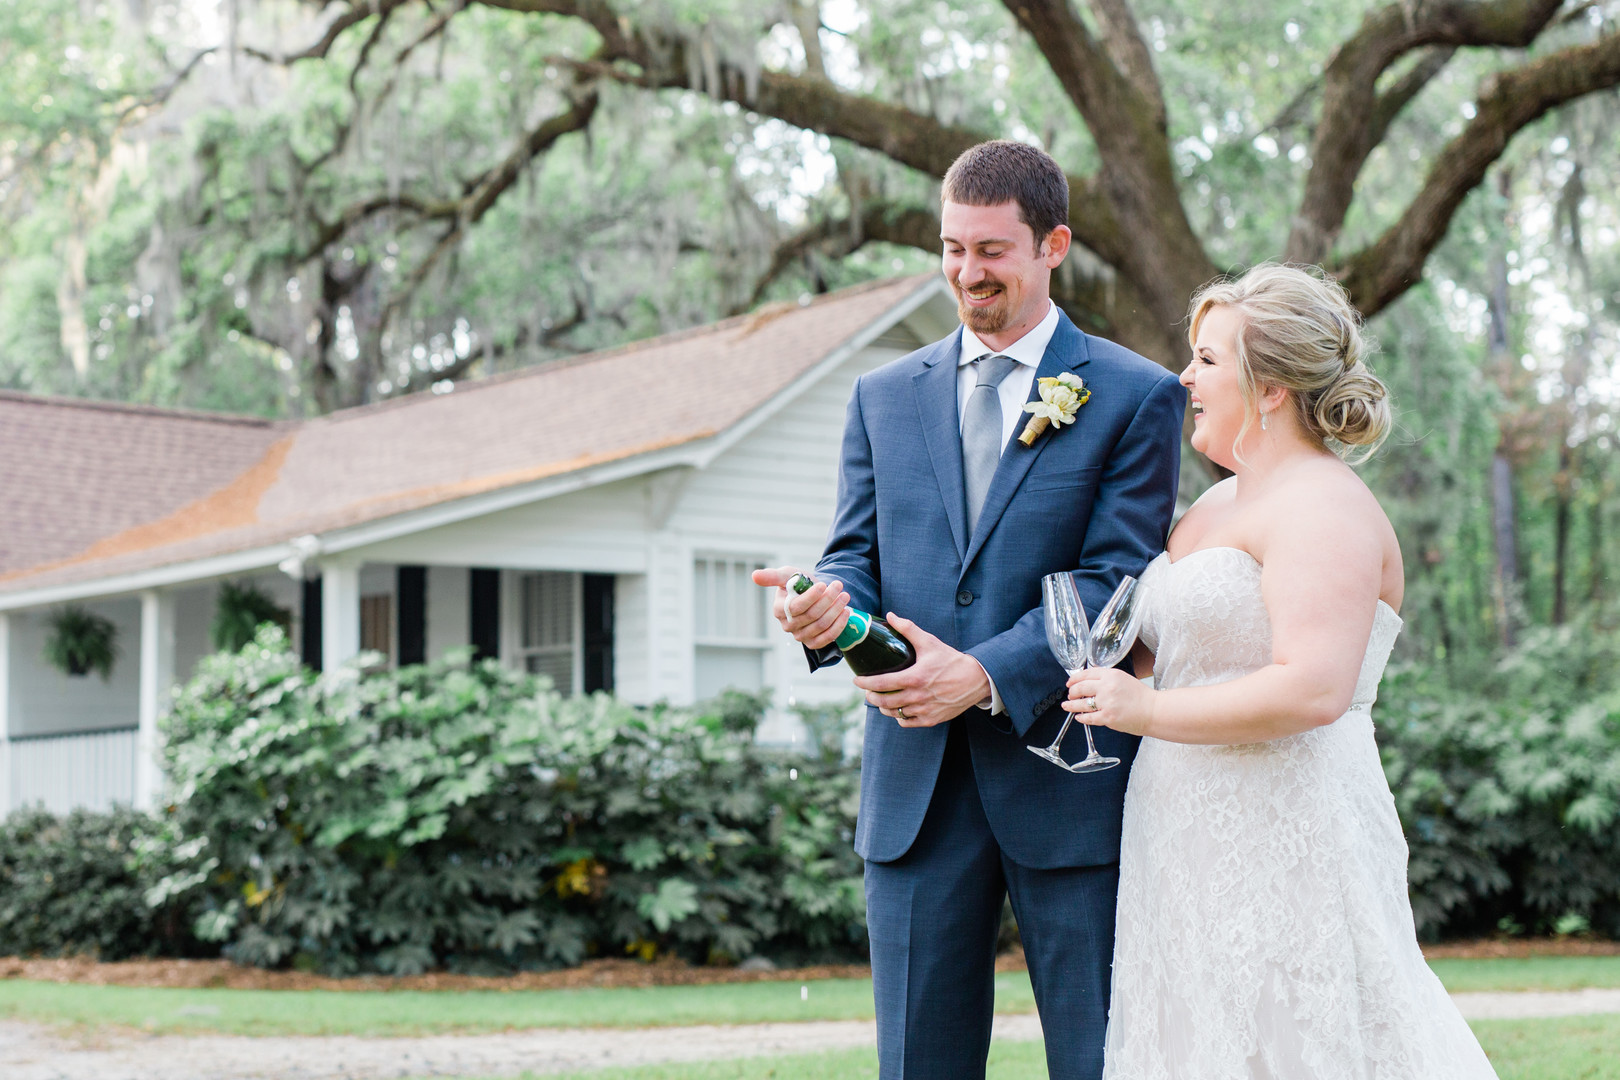 wingate-plantation-wedding-elopement-35.jpg